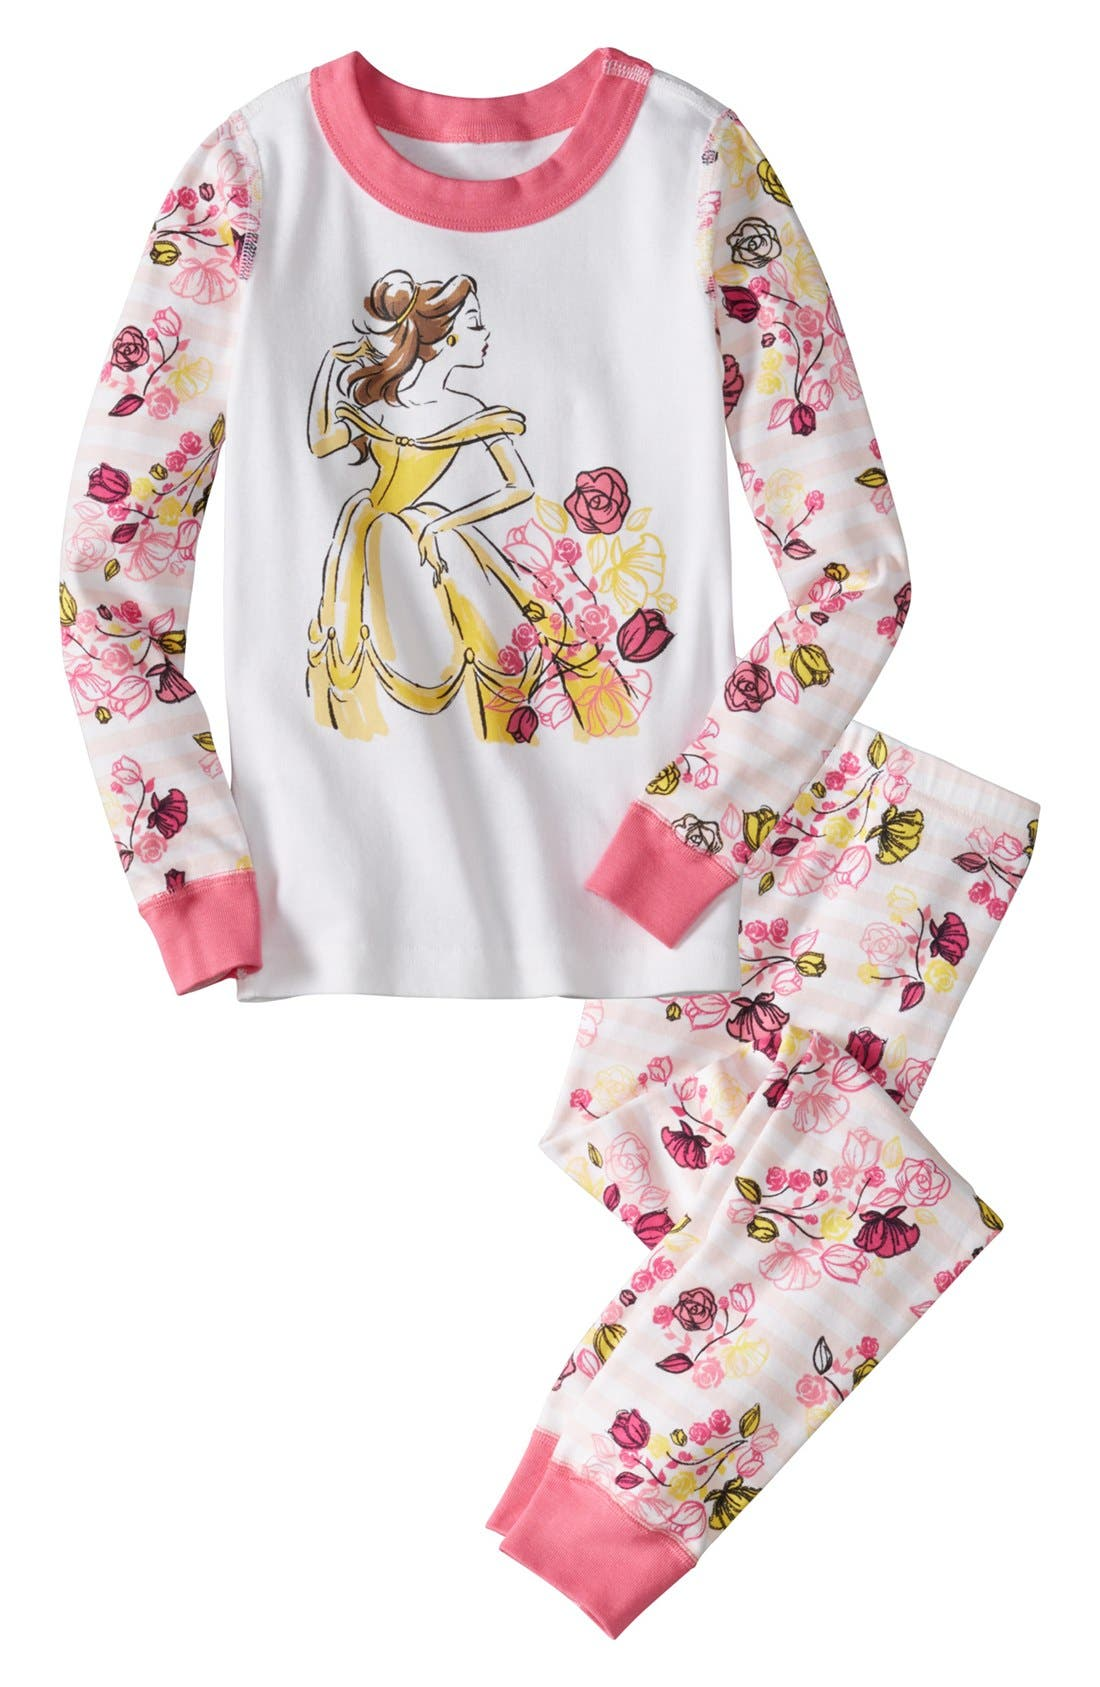 Main Image - Hanna Andersson 'Disney Princess - Belle' Two-Piece Fitted Pajamas (Toddler Girls)